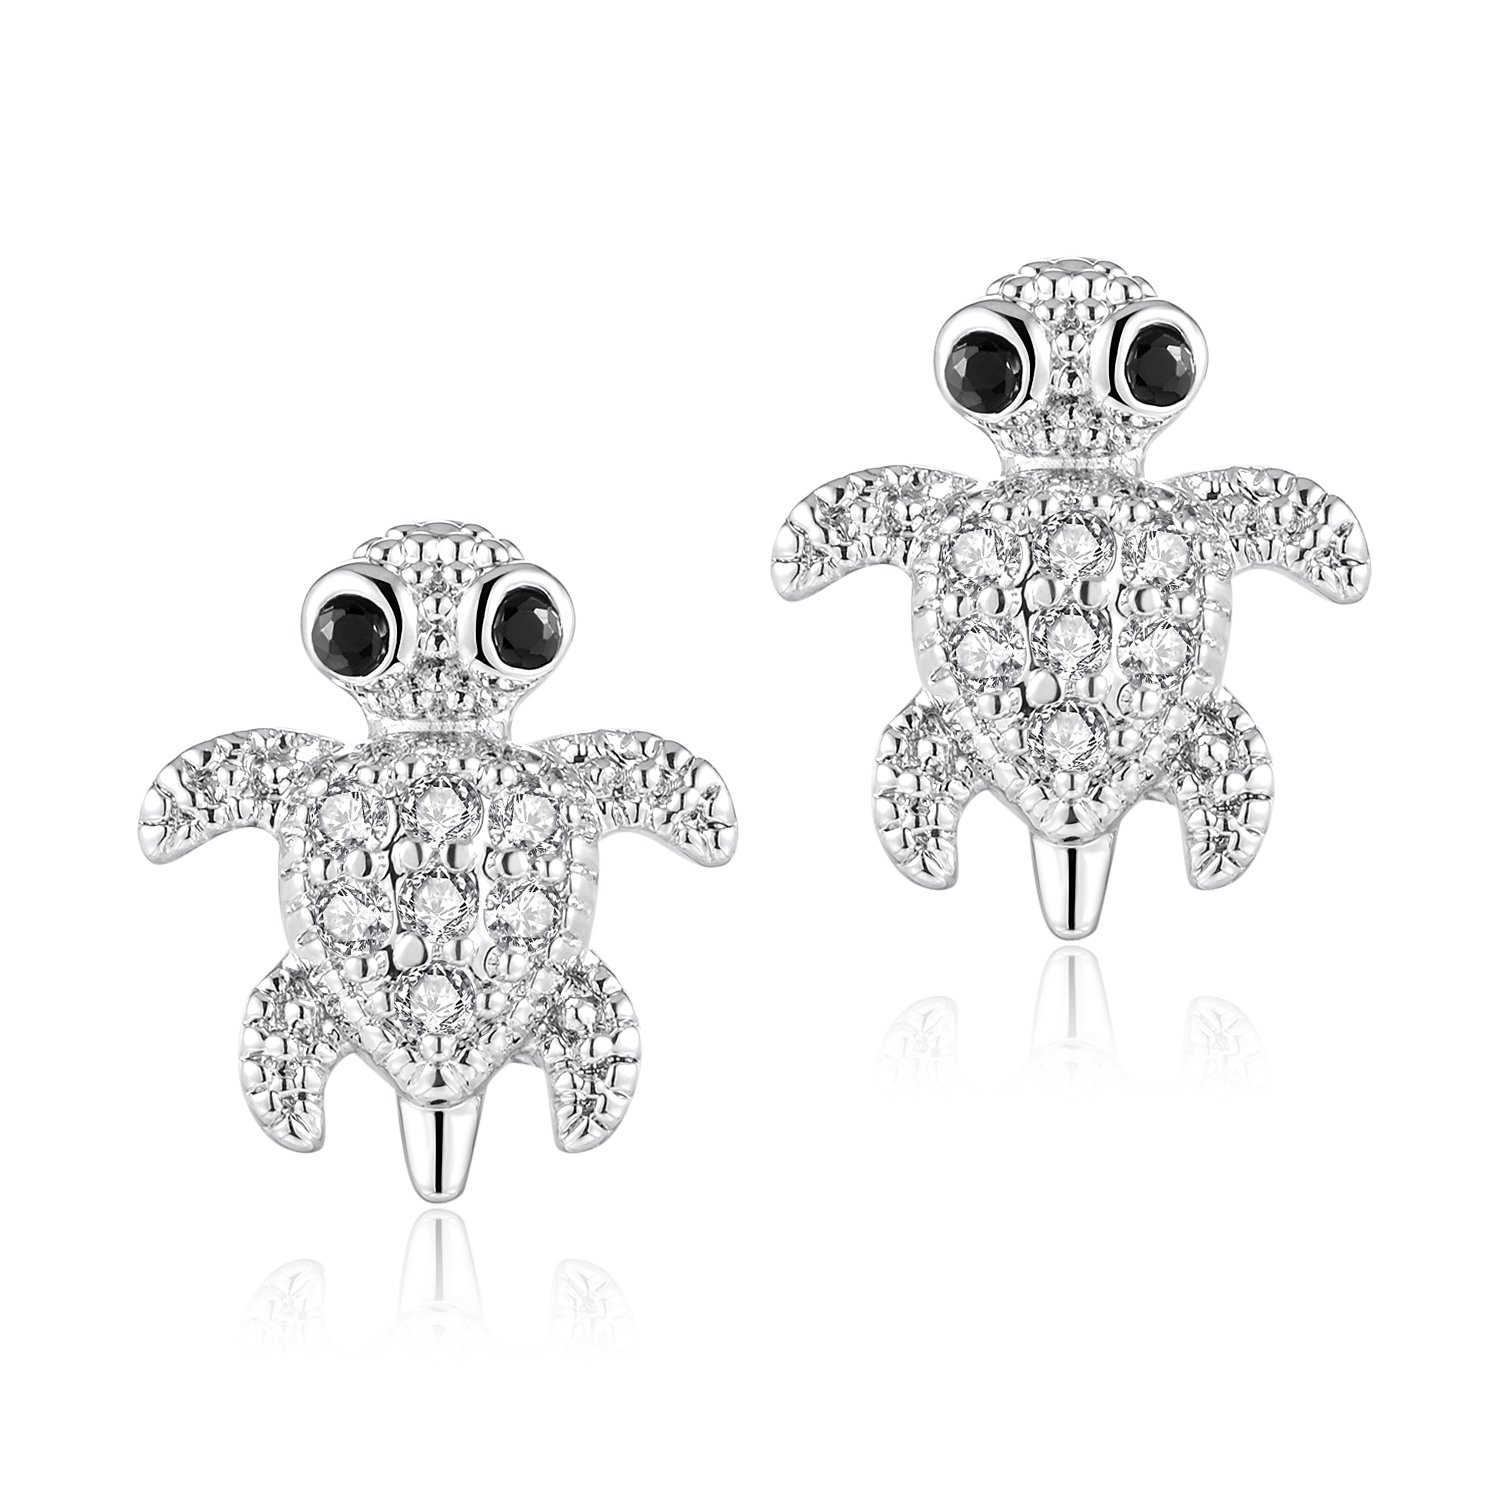 Candyfancy 2 Pieces 16g / 18g Surgical Steel Sea Turtle Ear Cartilage Helix Studs Earrings Auricle Piercings